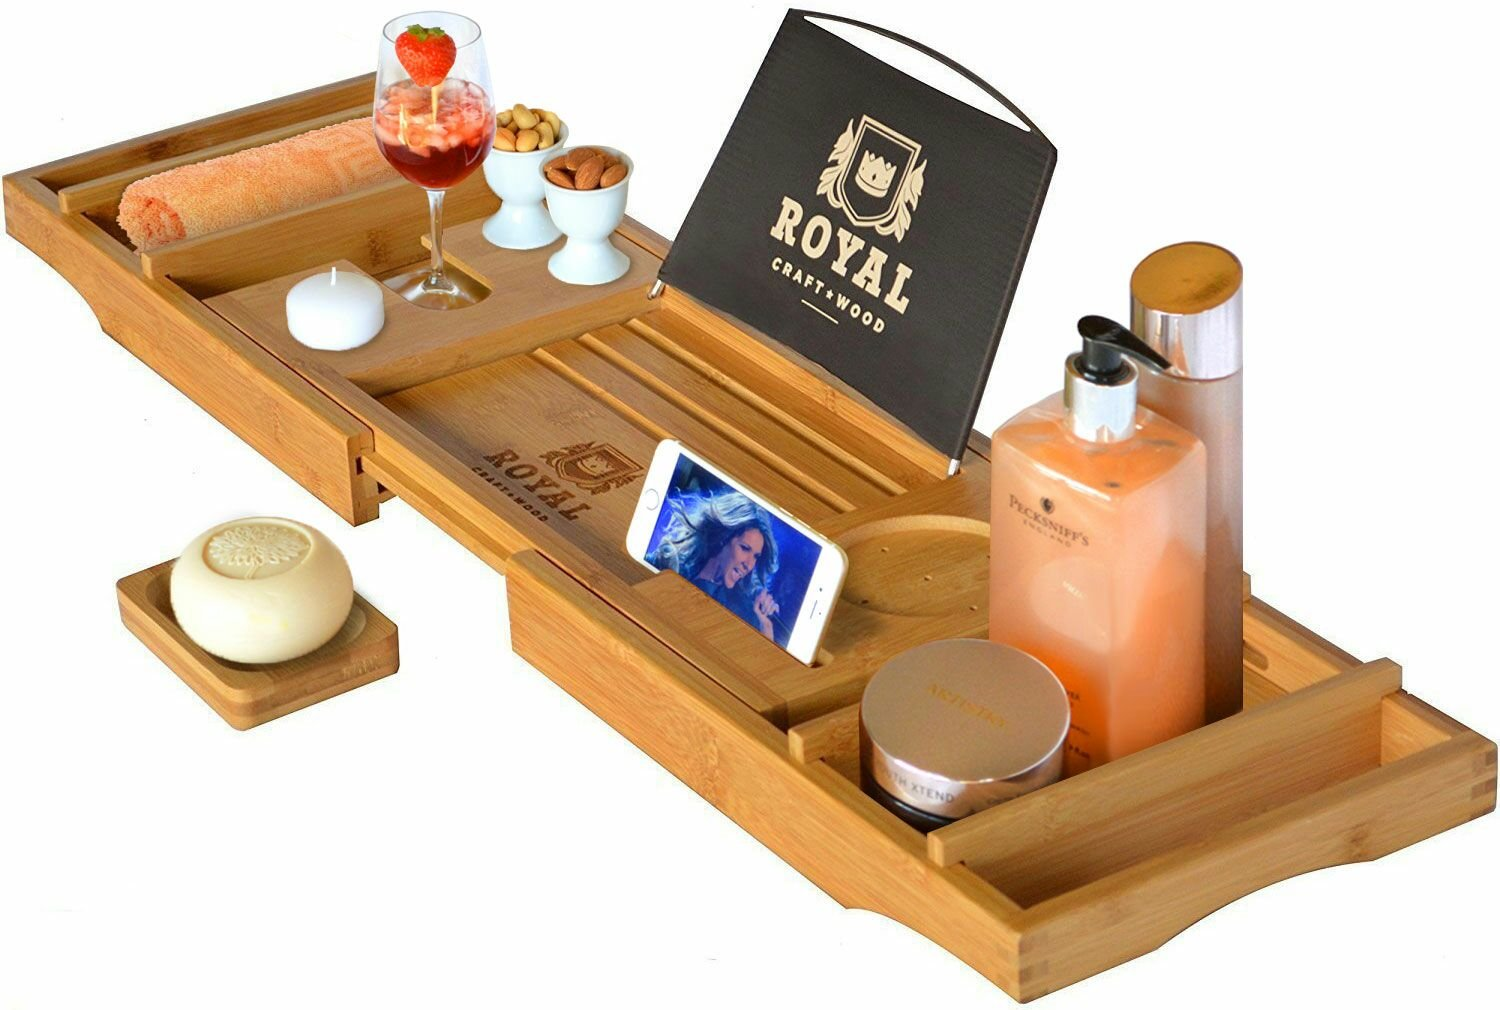 Royal Craft Wood Luxury Bathtub Caddy Tray, One or Two Person Bath and Bed Tray, Bonus Free Soap Holder (Natural Bamboo Color) RCW-01